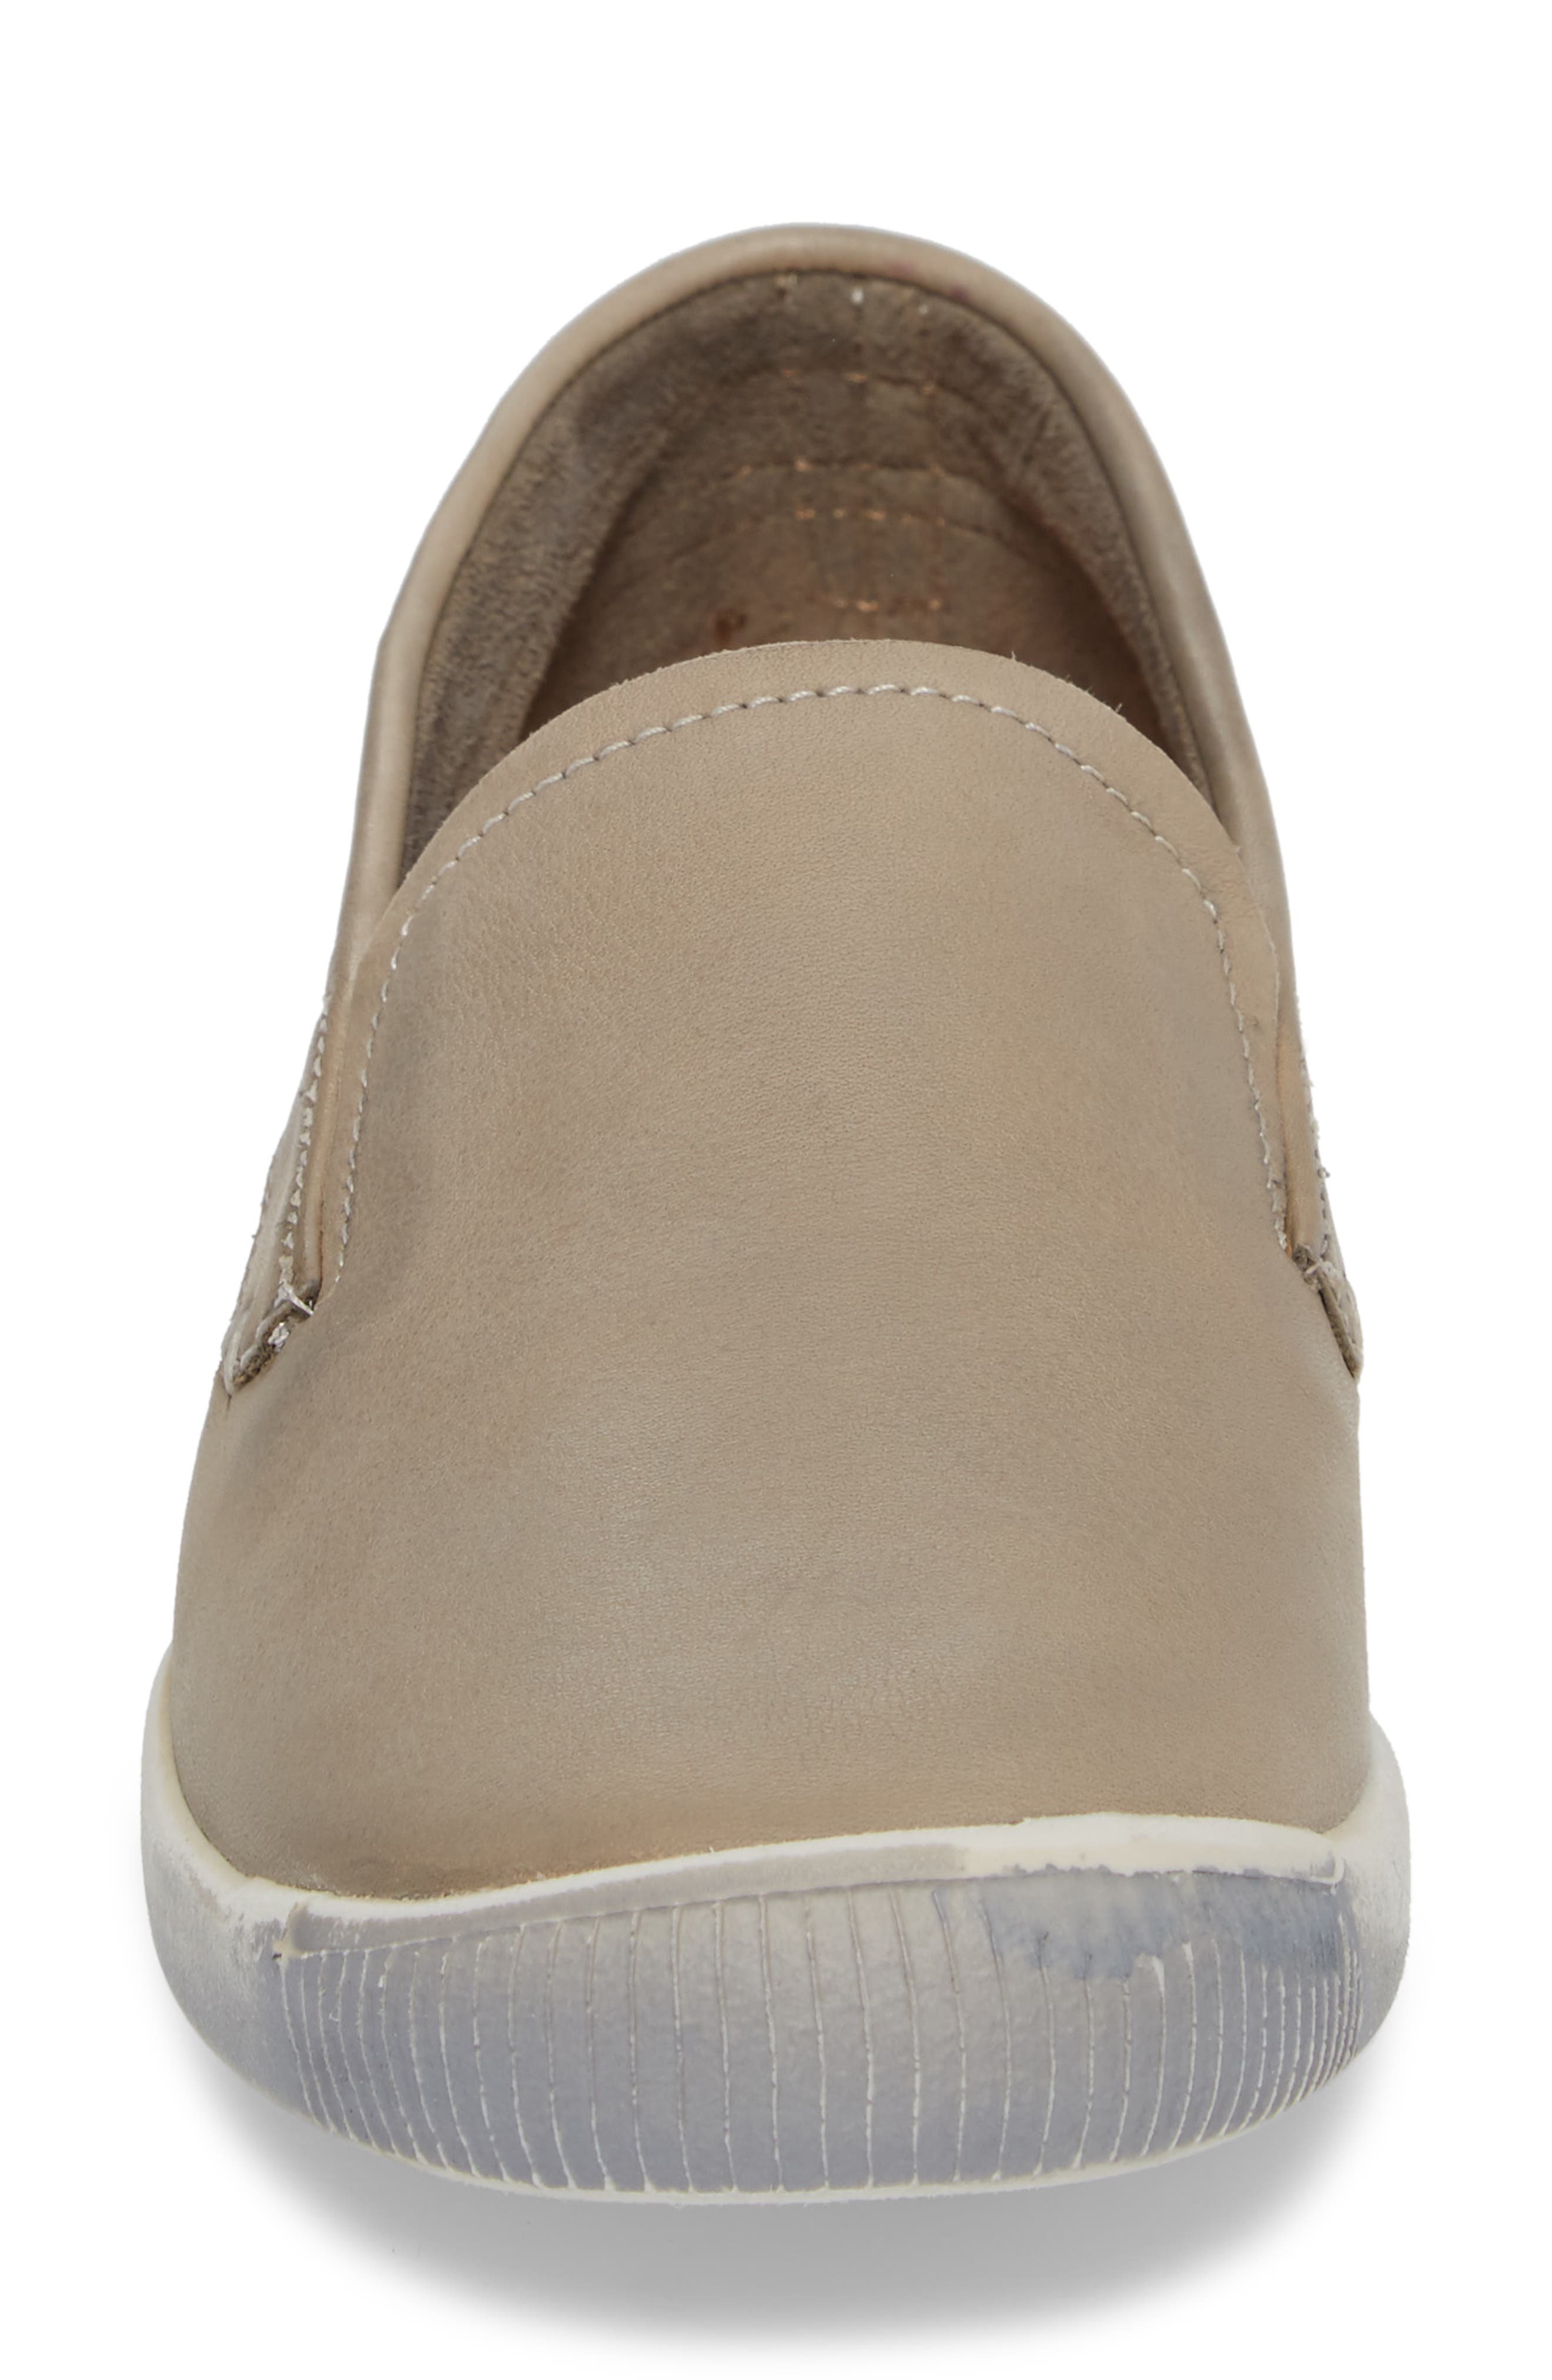 Ita Slip-On Sneaker,                             Alternate thumbnail 4, color,                             TAUPE/ TAUPE LEATHER